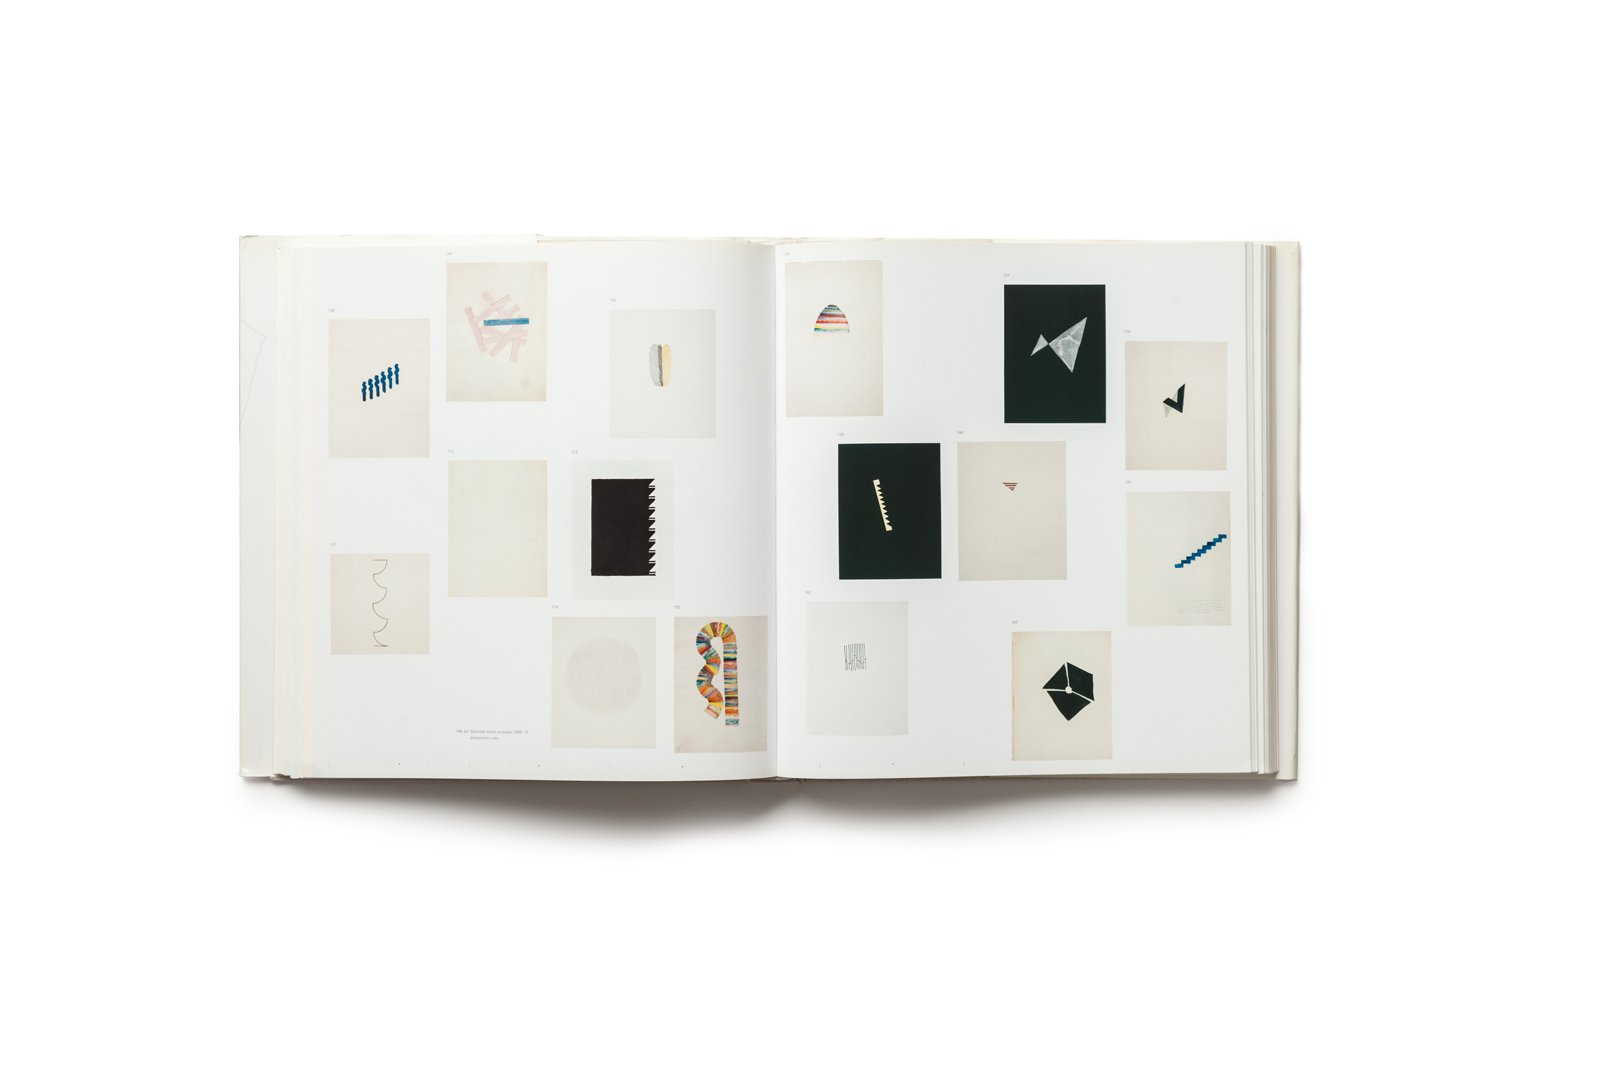 The Art of Richard Tuttle publication plates 148-163